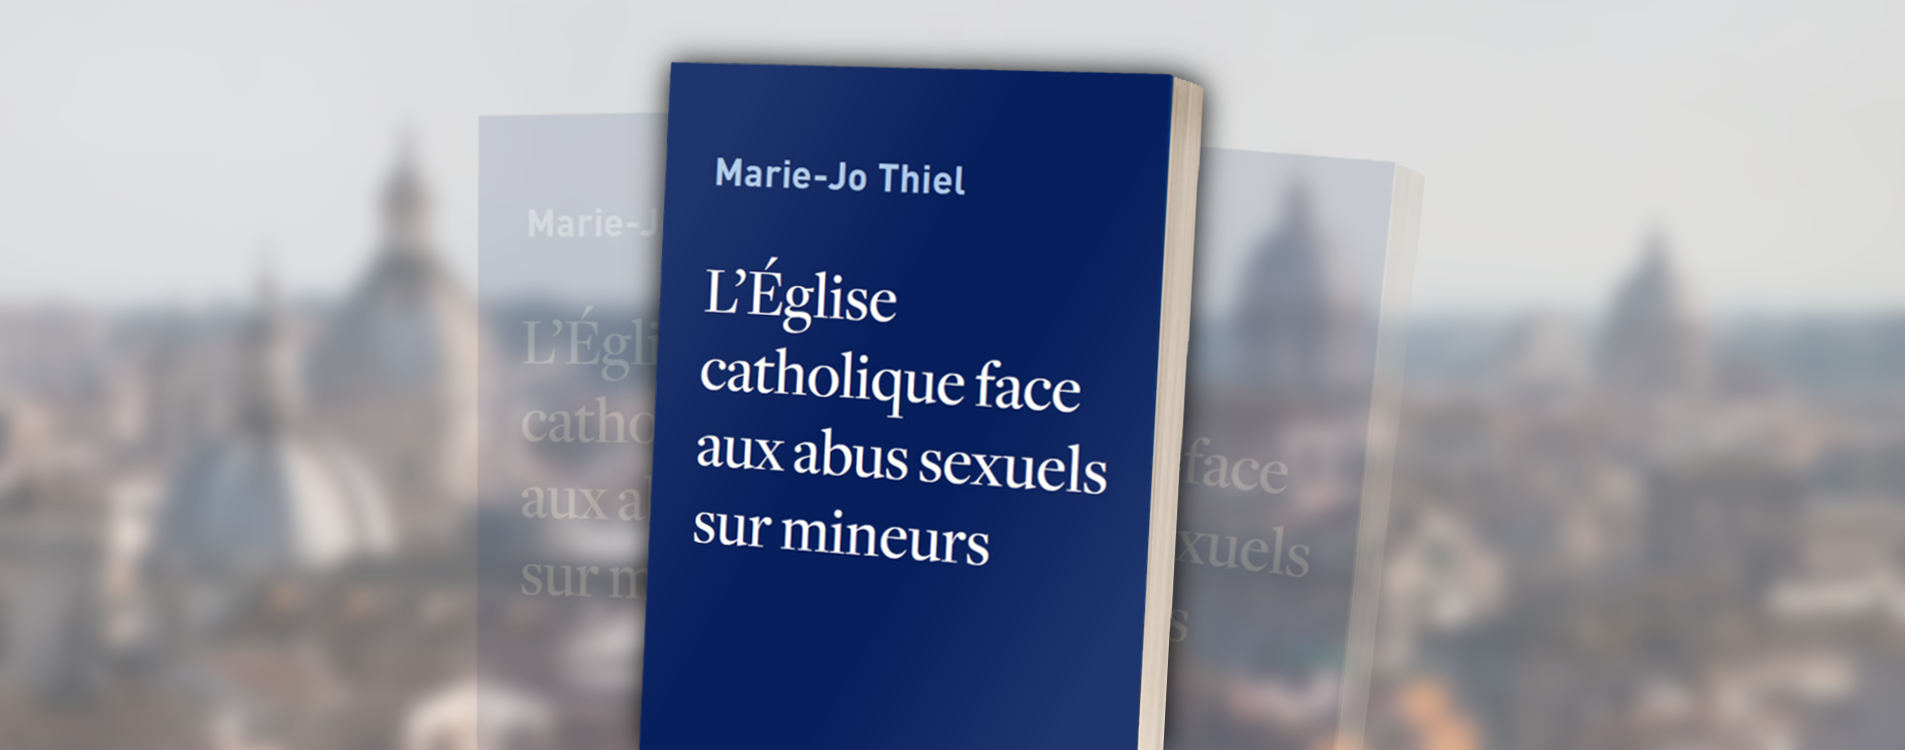 Acharnement médiatique contre l'Église